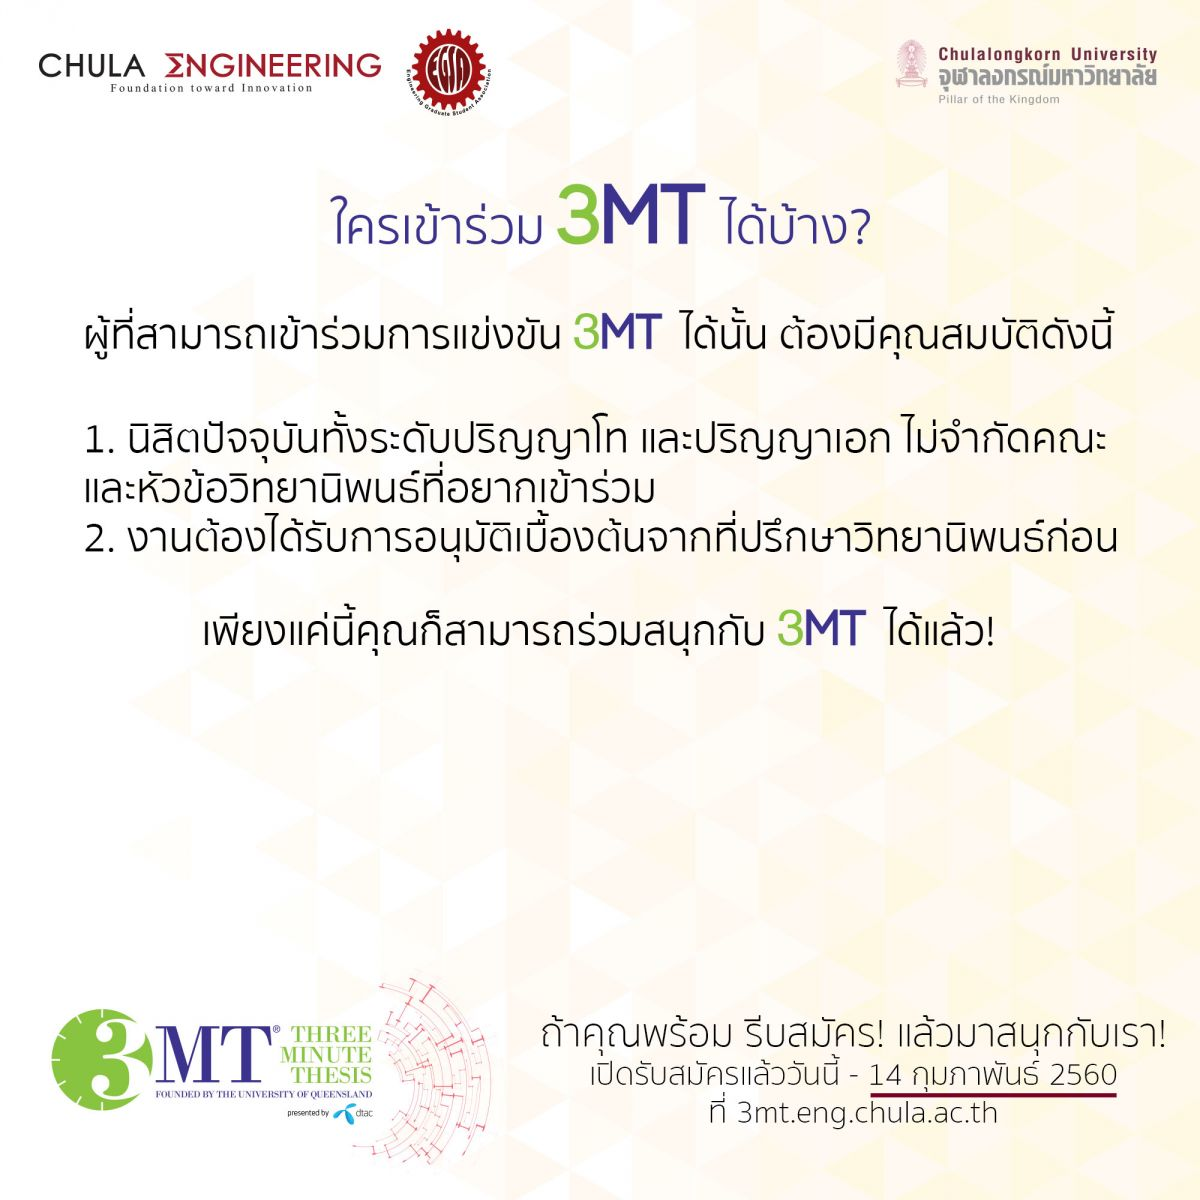 chula ac th thesis Chulalongkorn university library information network journal, thesis and the other please mail your comment & suggestion to webmaster@carchulaacth.